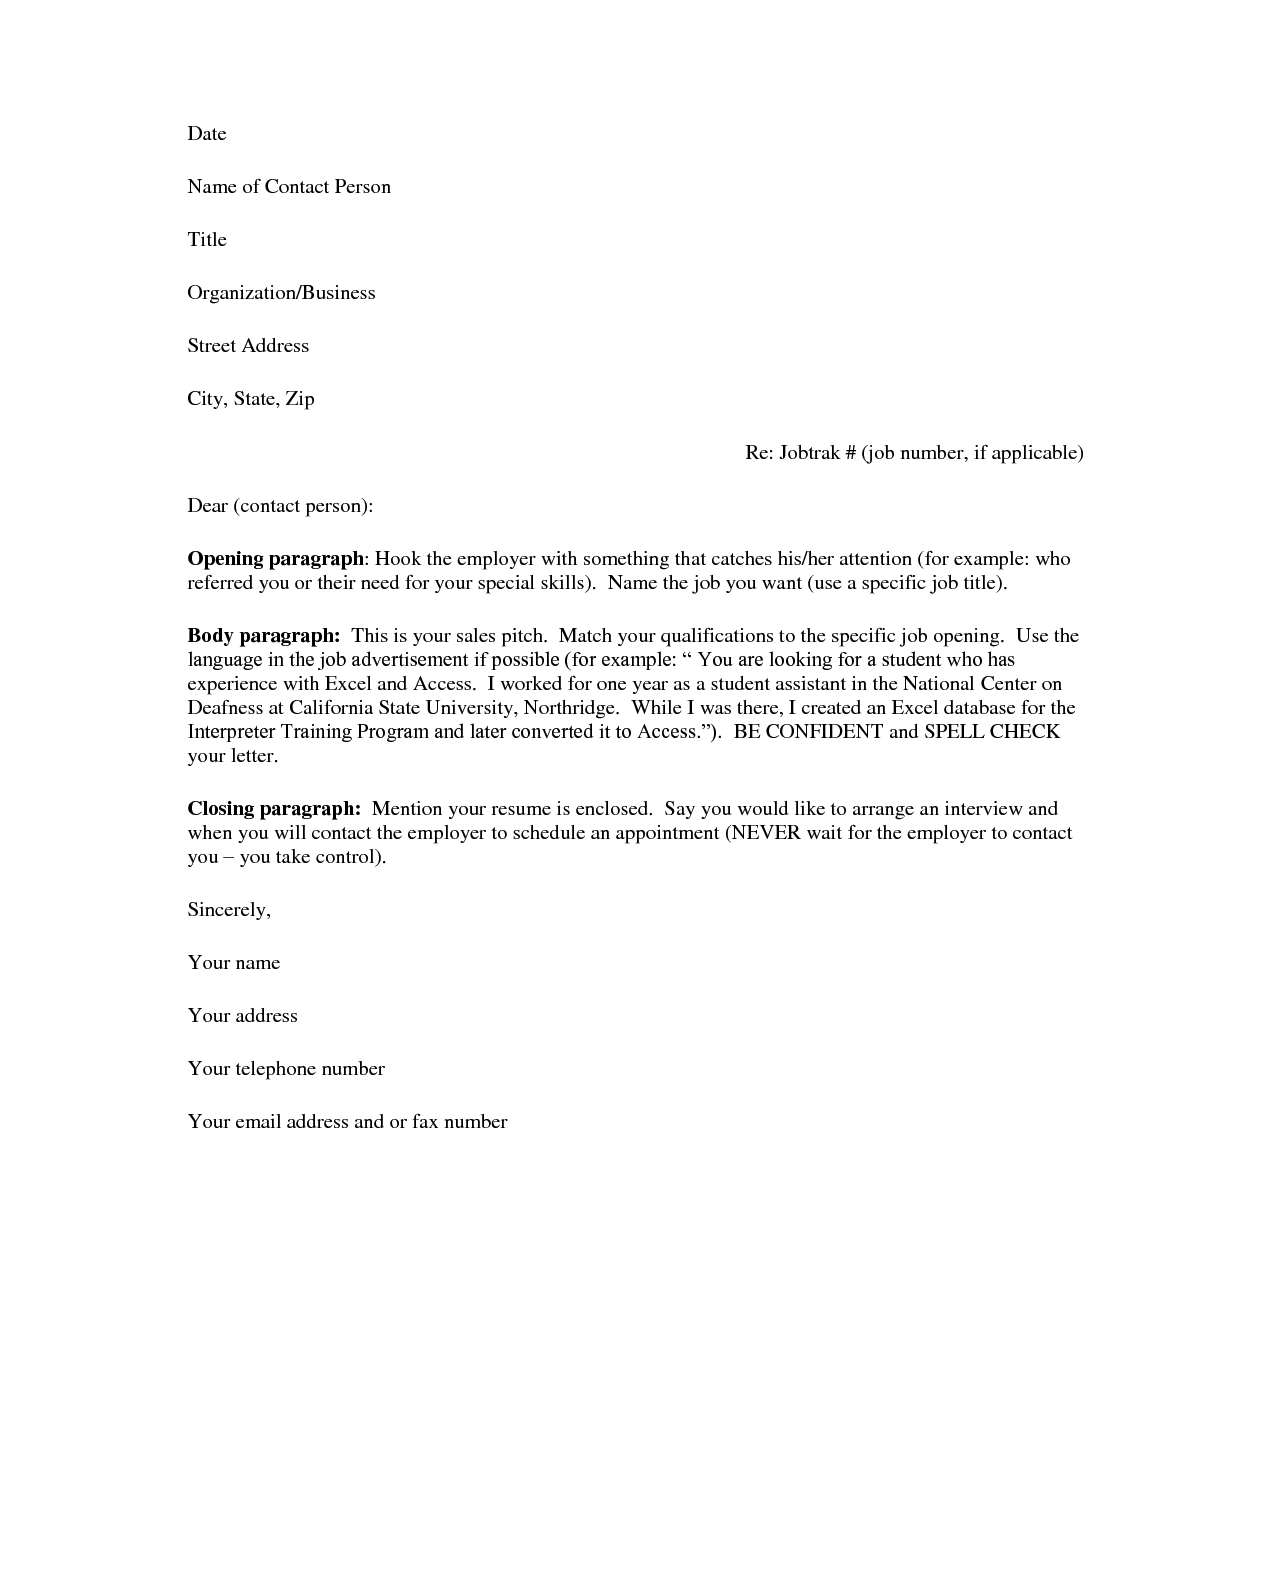 Resume Example, Urban Pie Resume Cover Letter Example